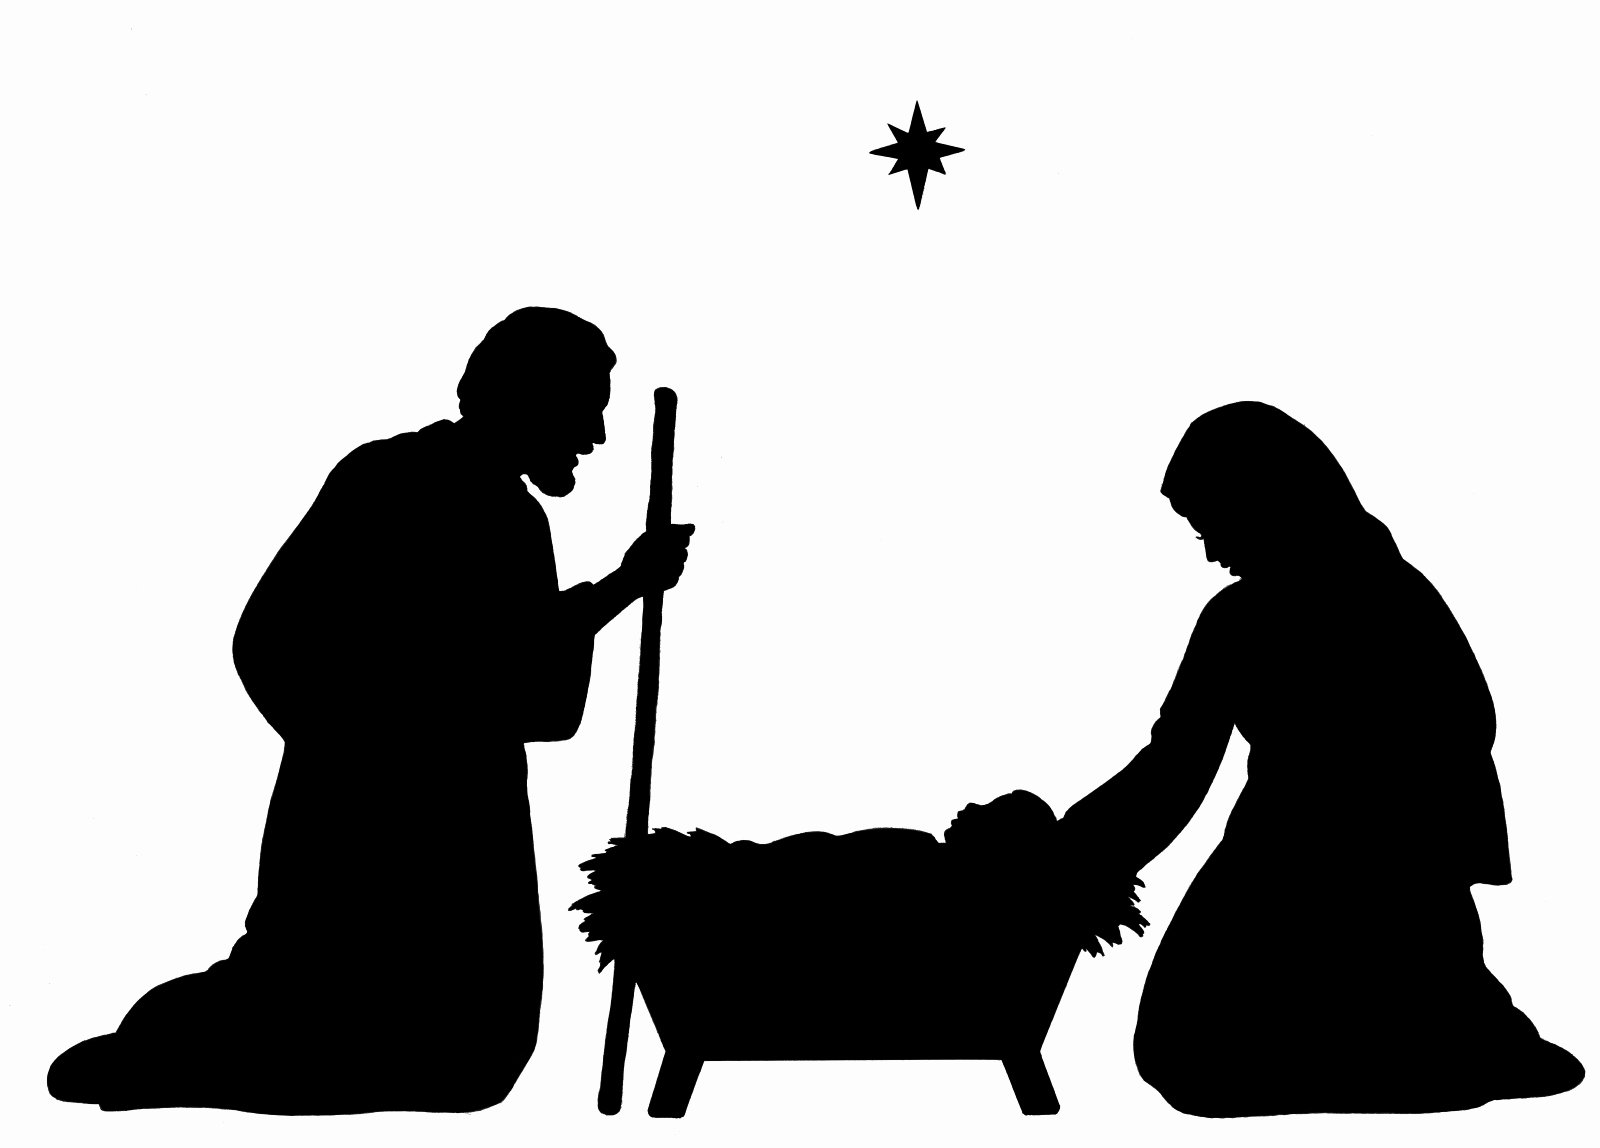 Nativity Scene Silhouette Printable Elegant the Church Of Jesus Christ Of Latter Day Saints